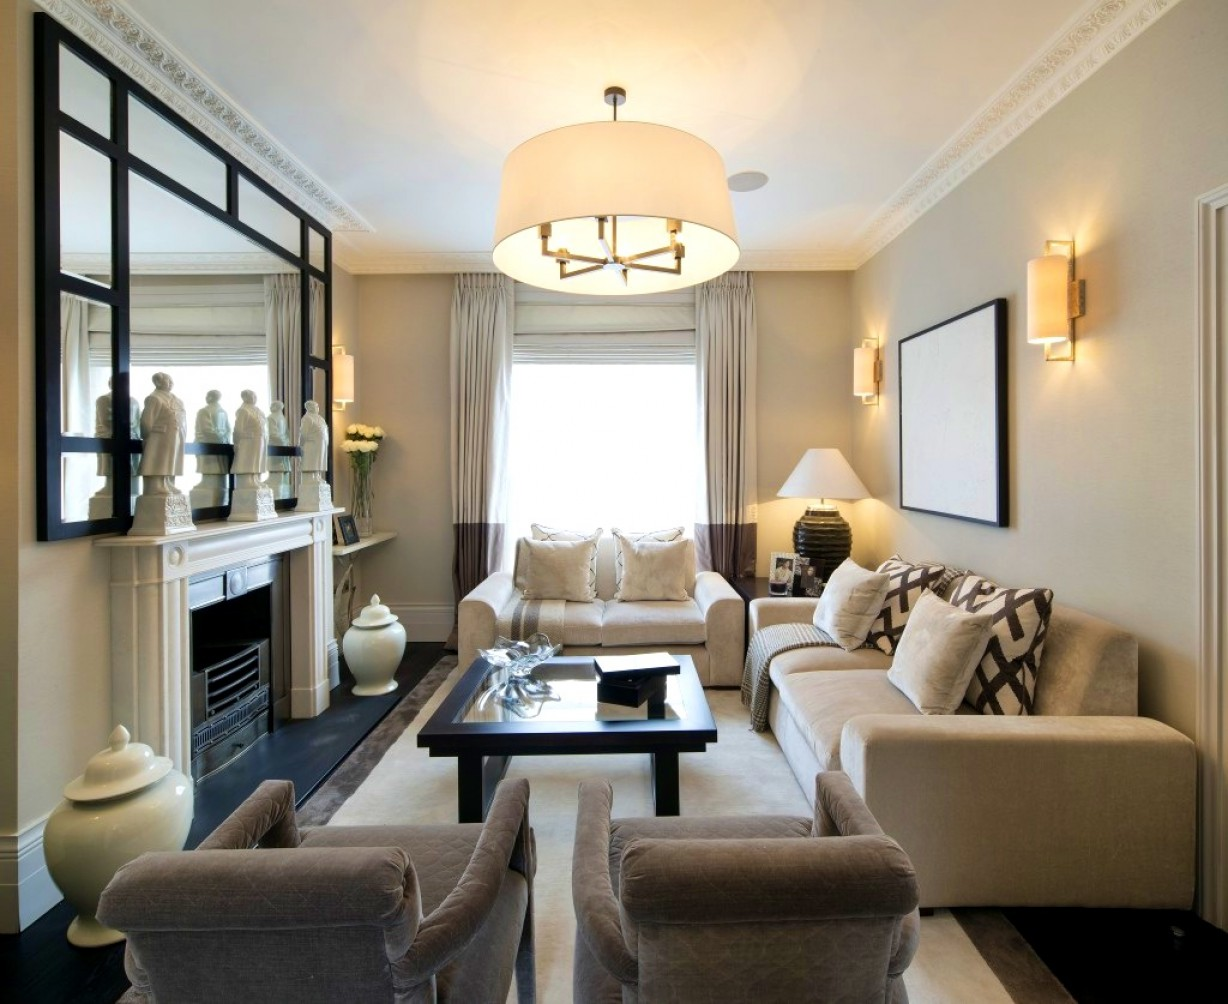 Fine Long Narrow Living Room With Fireplace In Center ...